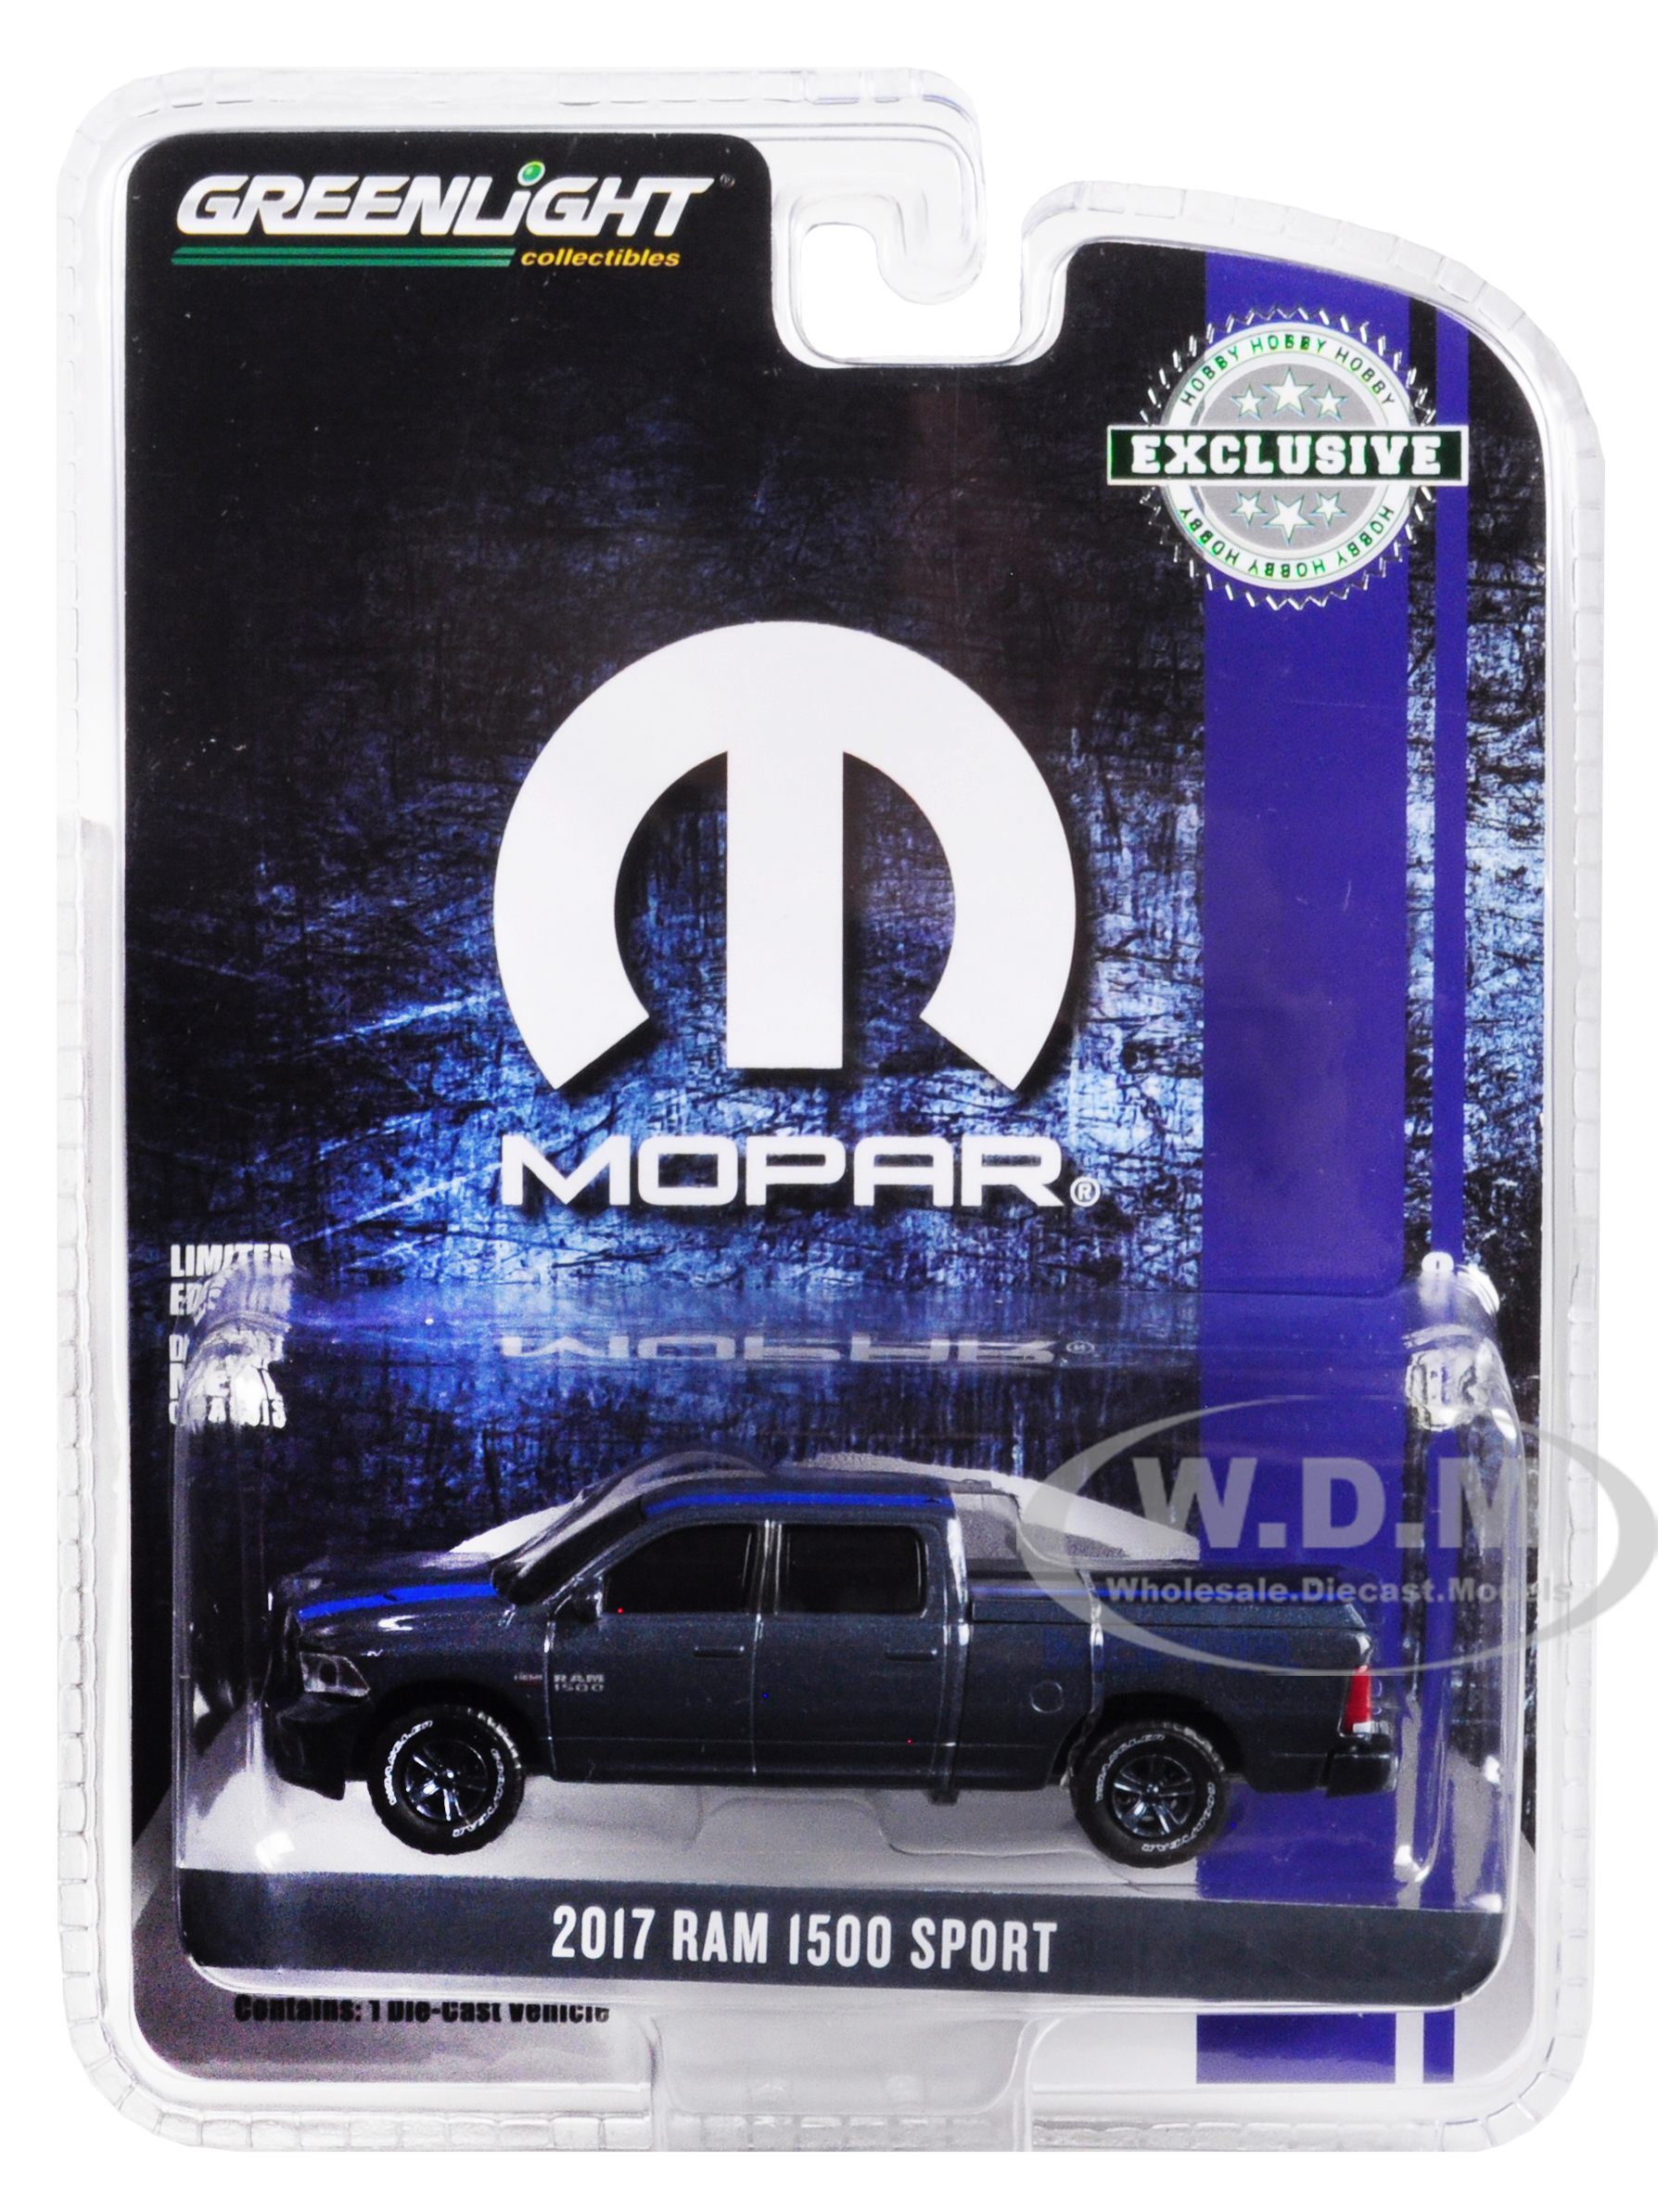 2017 RAM 1500 Sport Pickup Truck with Bed Cover Metallic Dark Blue and Blue Stripe MOPAR Hobby Exclusive 1/64 Diecast Model Car by Greenlight